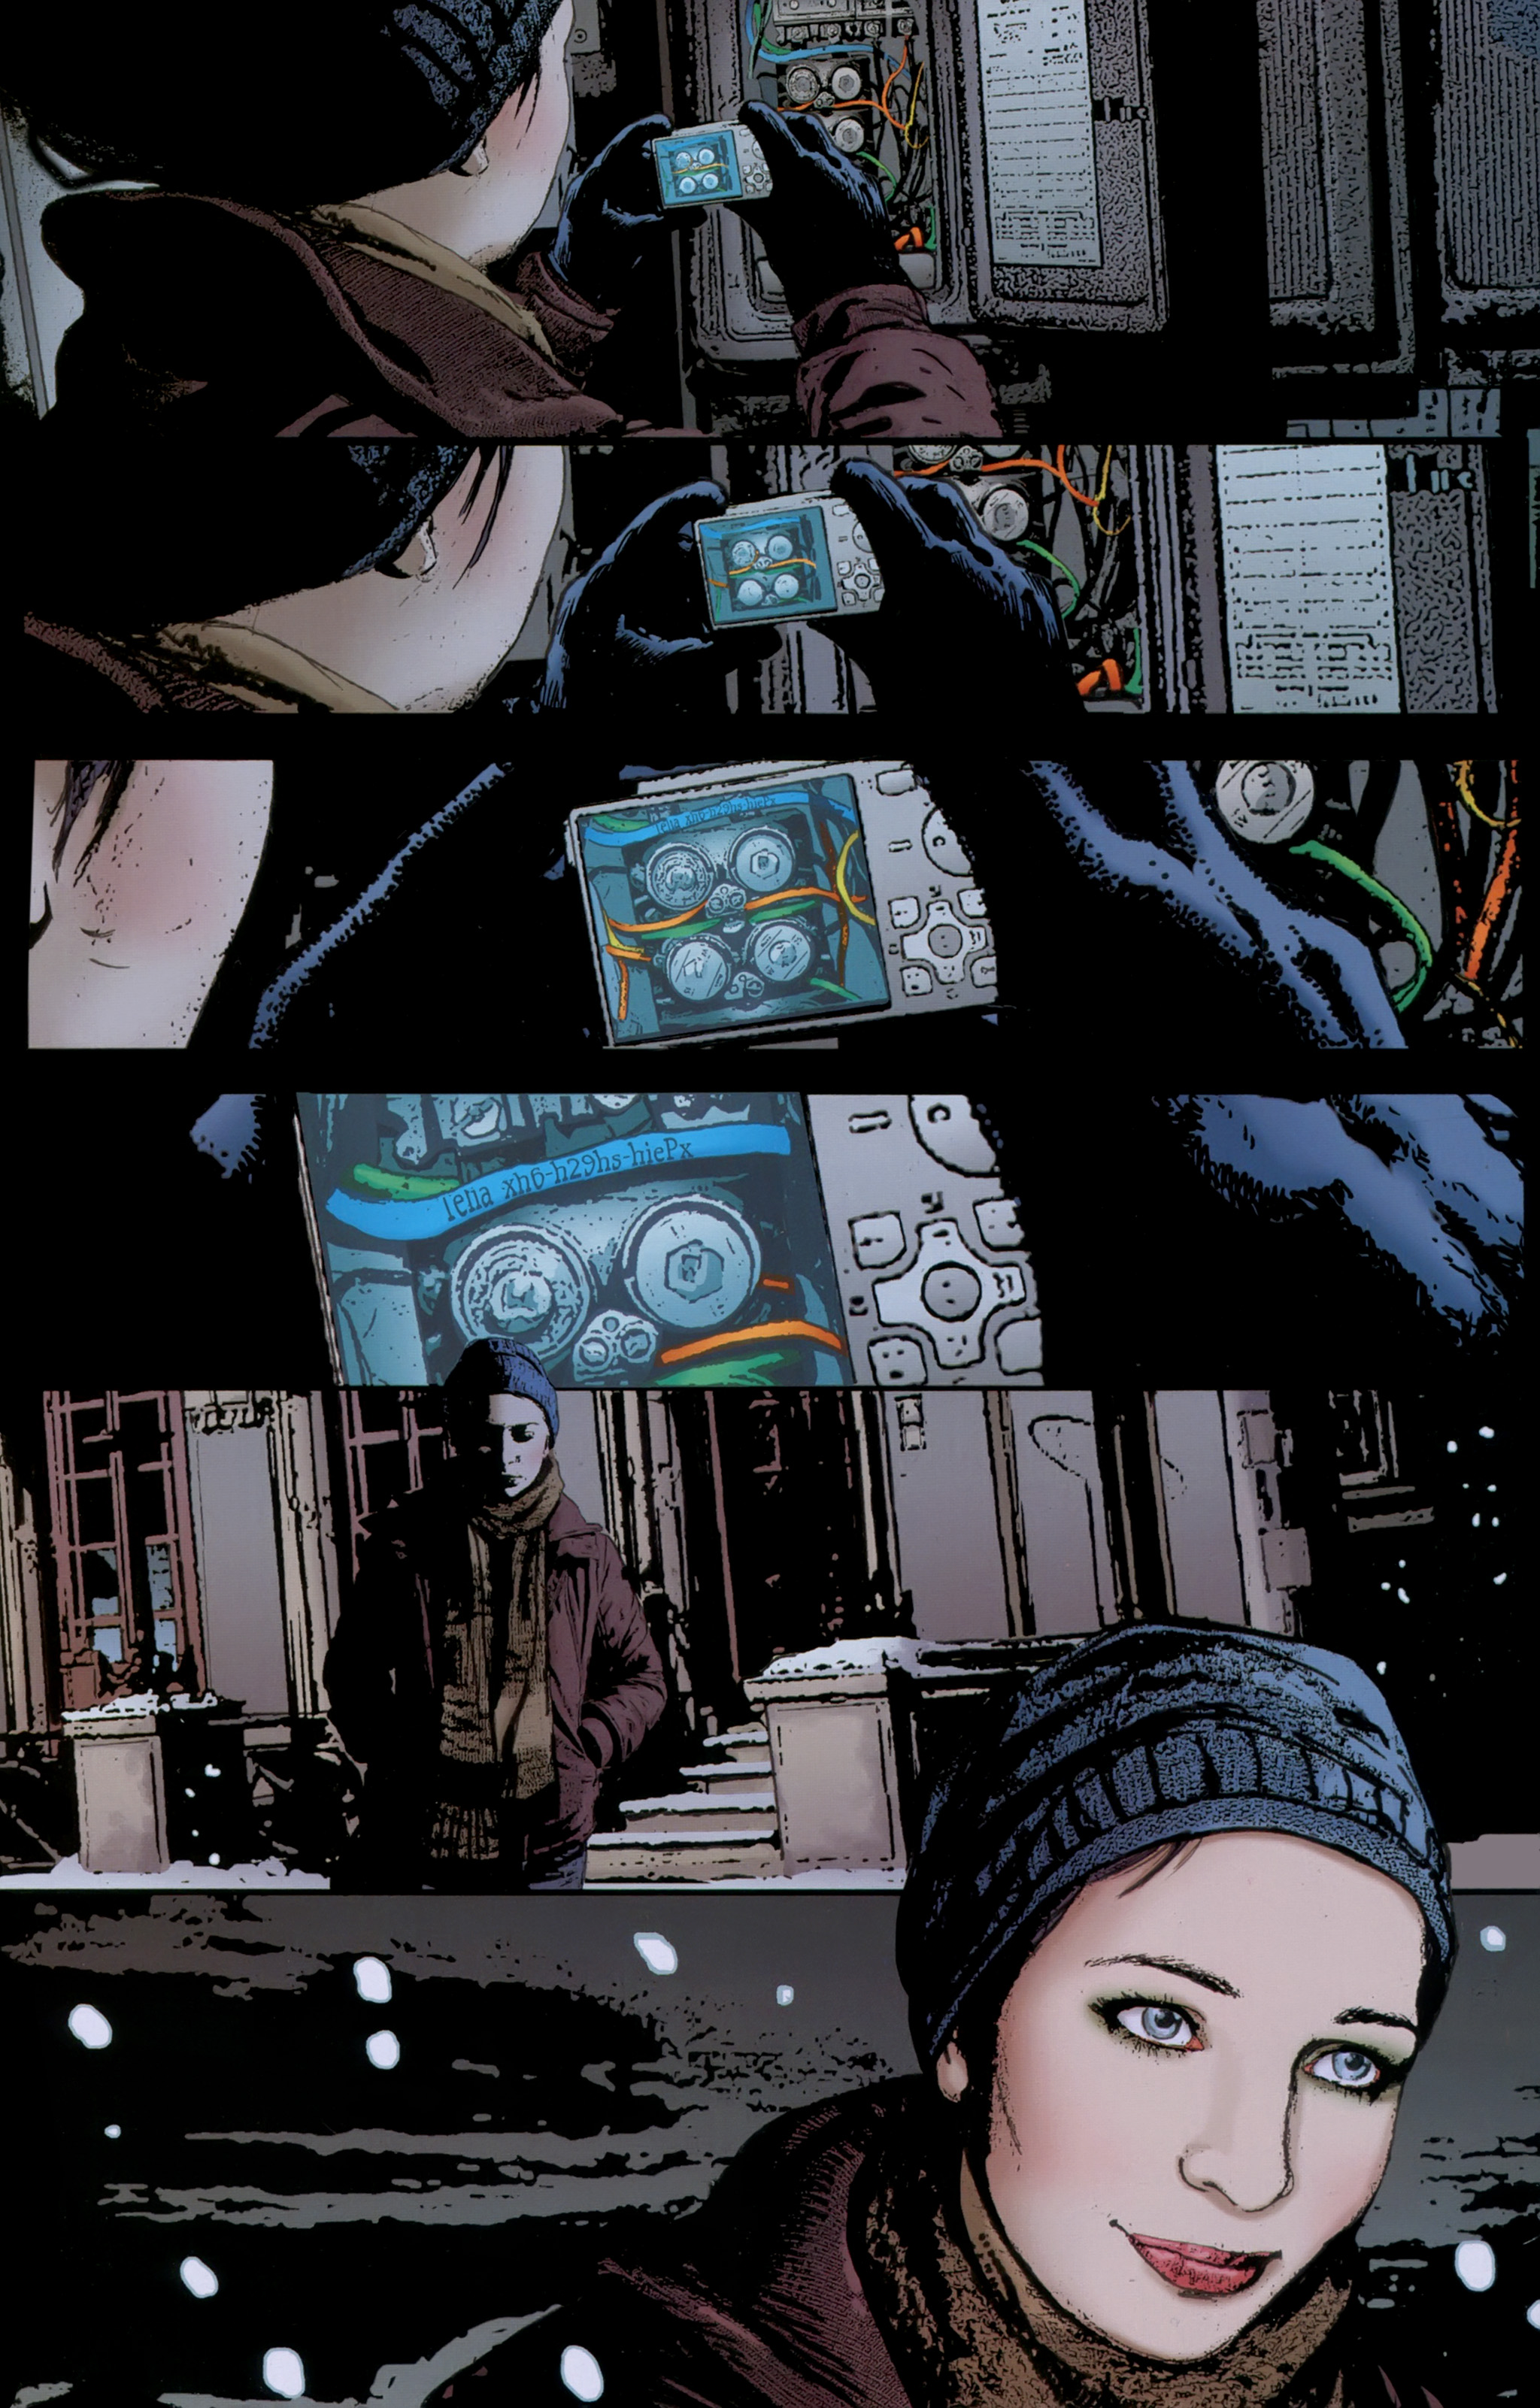 Read online The Girl With the Dragon Tattoo comic -  Issue # TPB 1 - 46